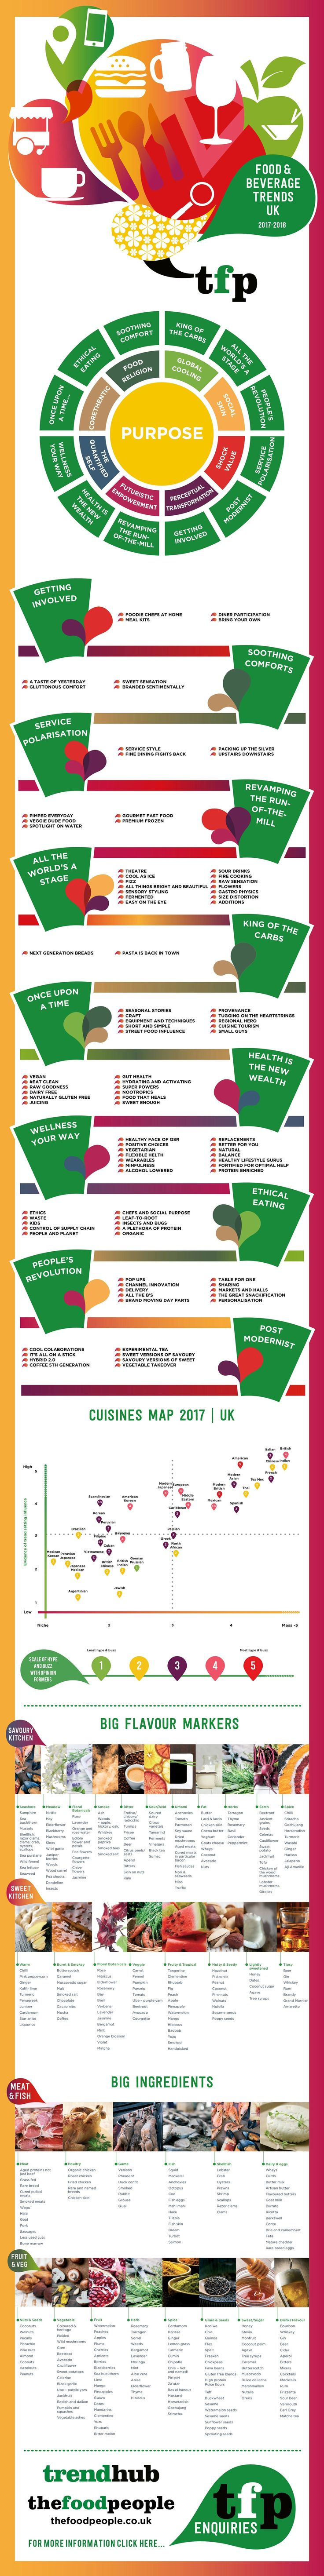 Are You Wondering What The Year Ahead Holds In Store For The Food And  Drinks Industry? The Food People Share Their Trends To Look For In This  Infographic.